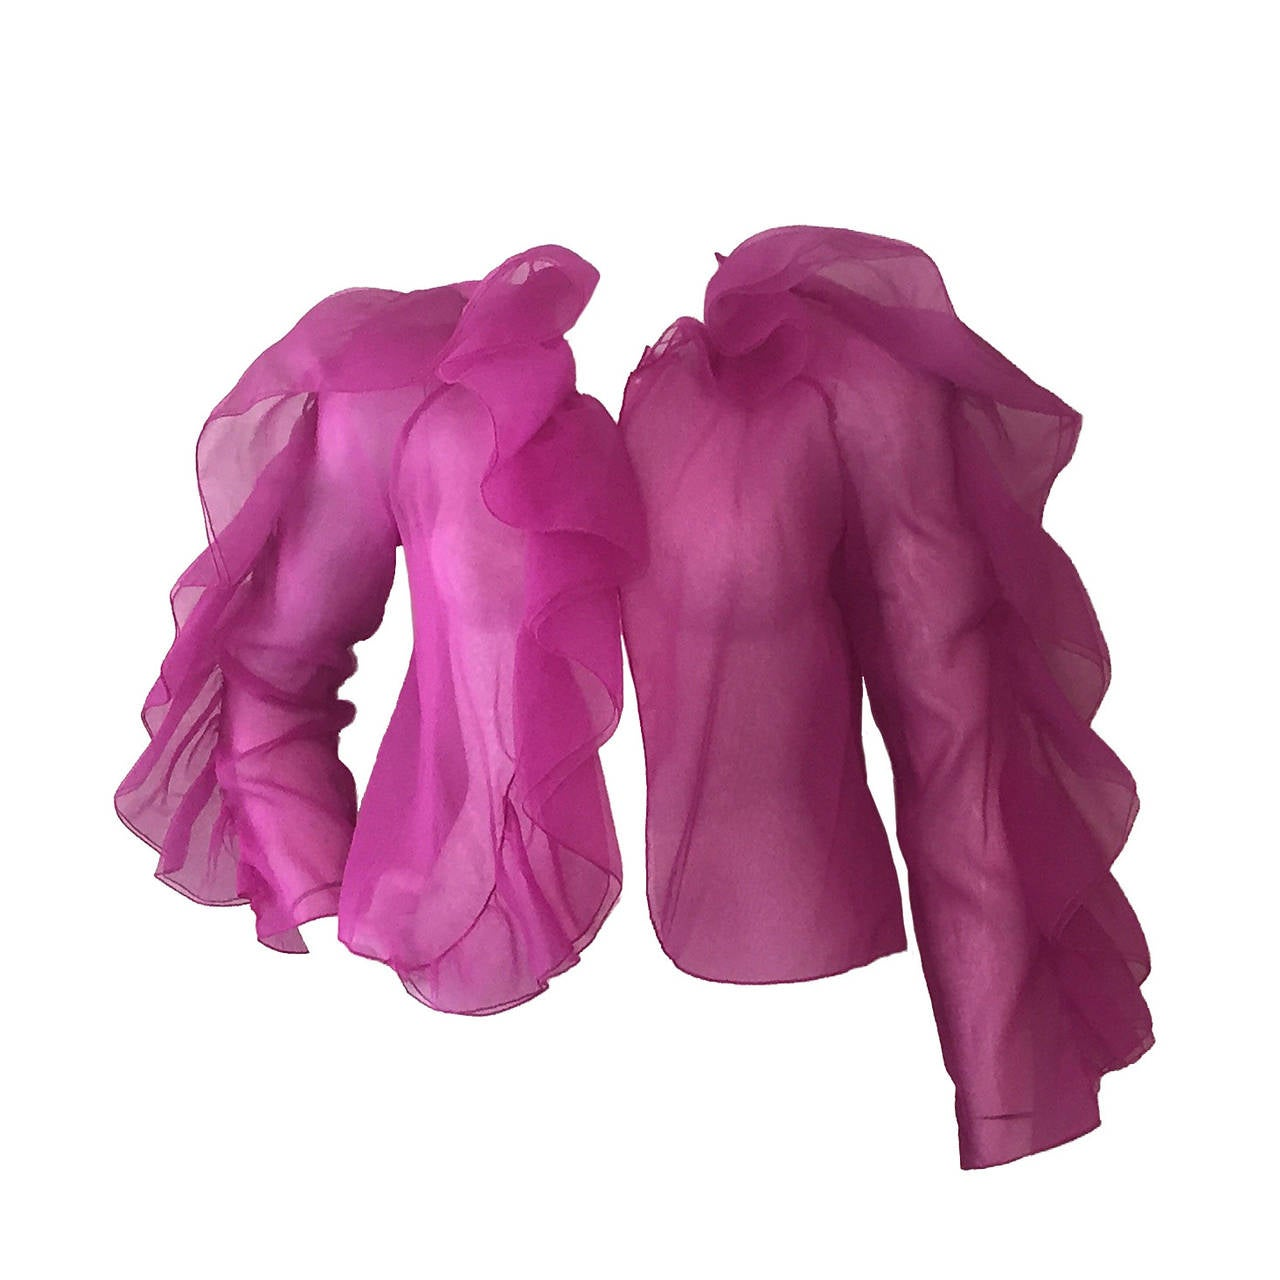 1980s Fuchsia Organza Ruffled-Sleeve Blouse For Sale